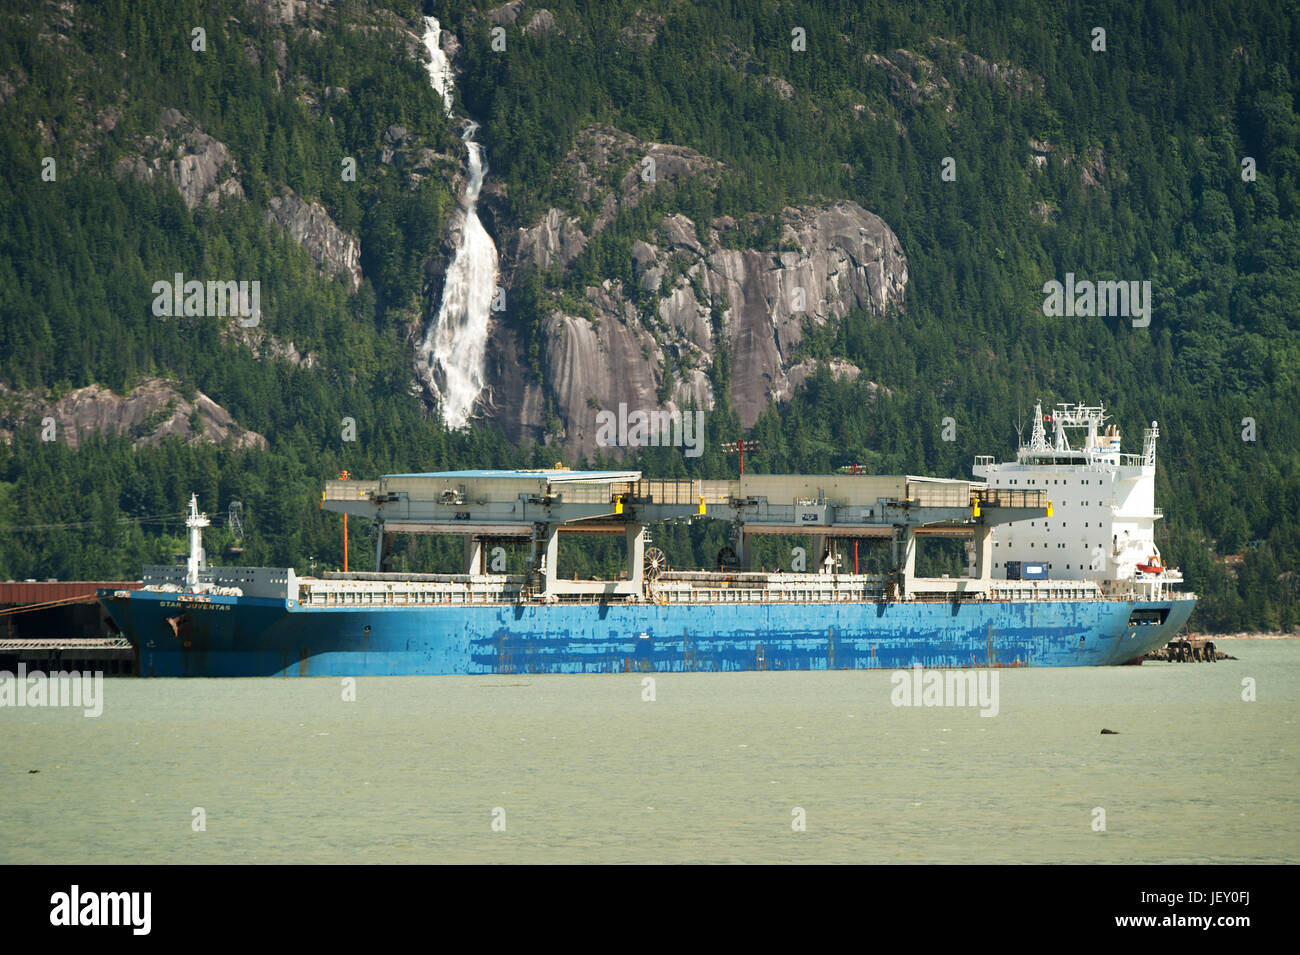 The cargo ship Star Juventas moored at the Squamish Terminals pier.  Squamish BC, Canada. - Stock Image